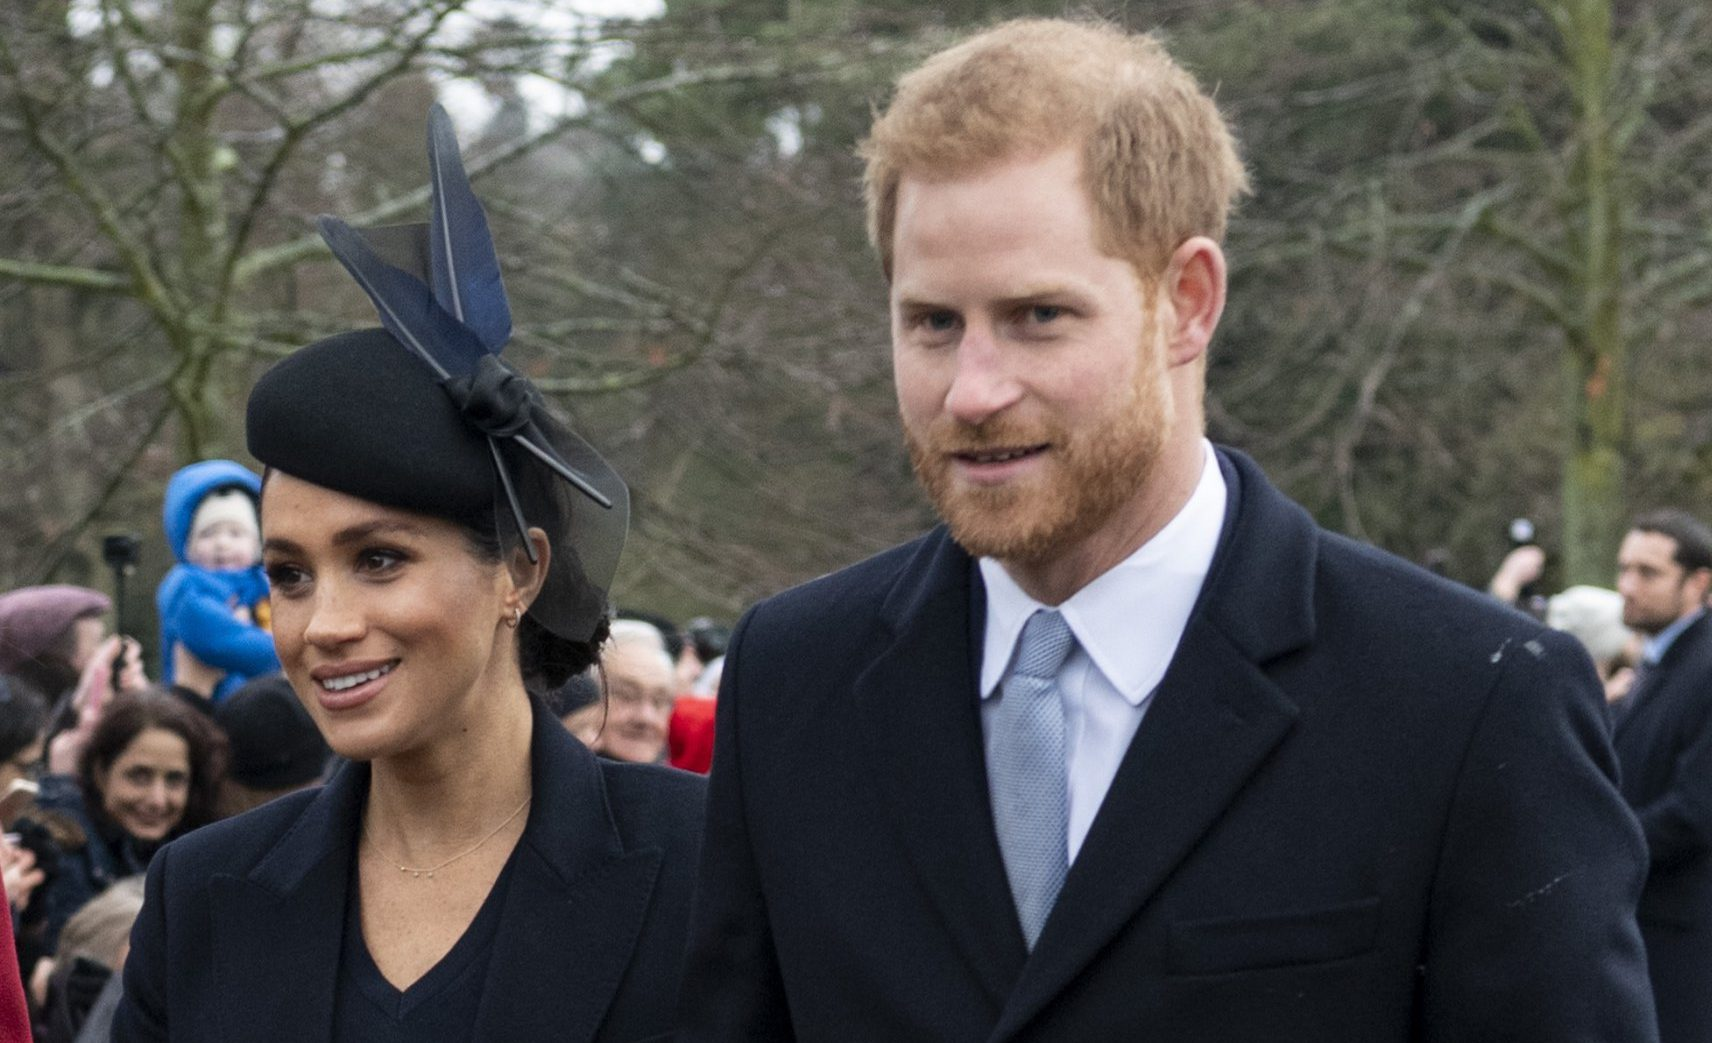 When is Meghan Markle due to give birth as she hints it may be sooner than first thought?